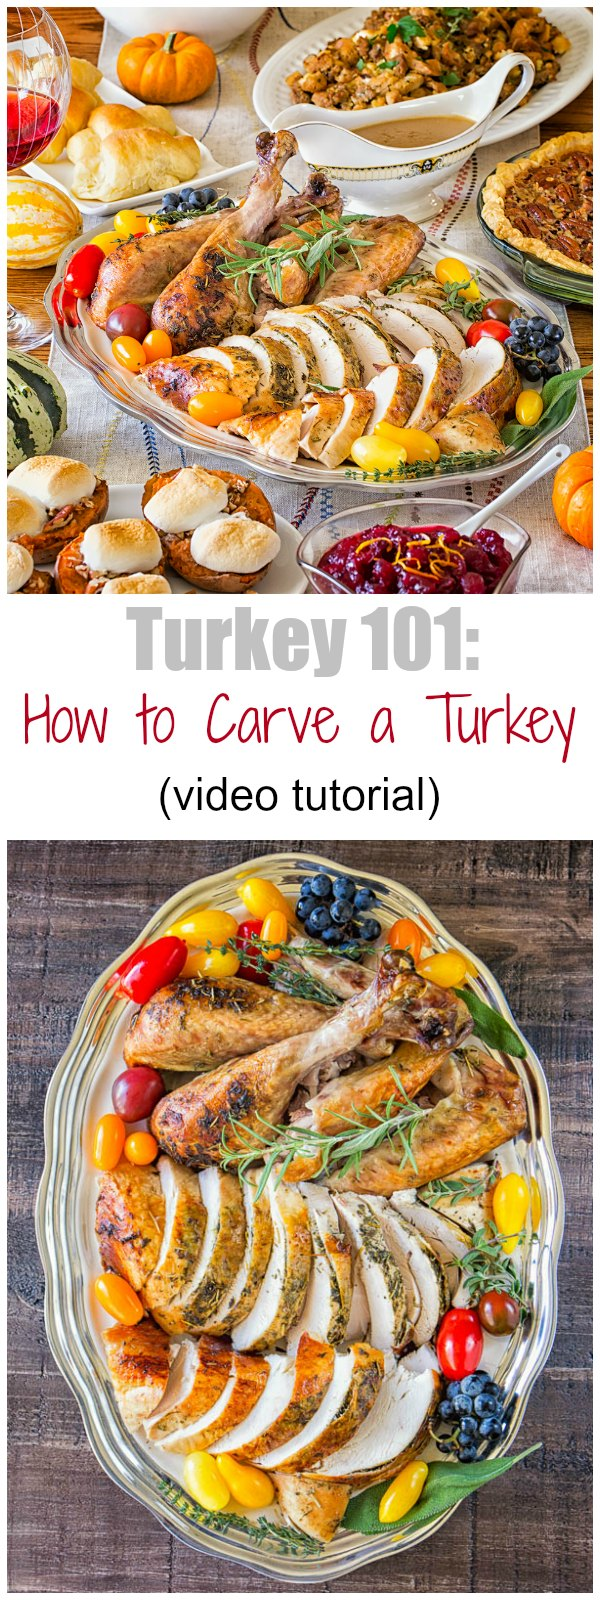 How to carve a whole turkey. #ThanksgivingTurkey #TurkeyRecipe #ThanksgivingMenu #ThanksgivingRecipes